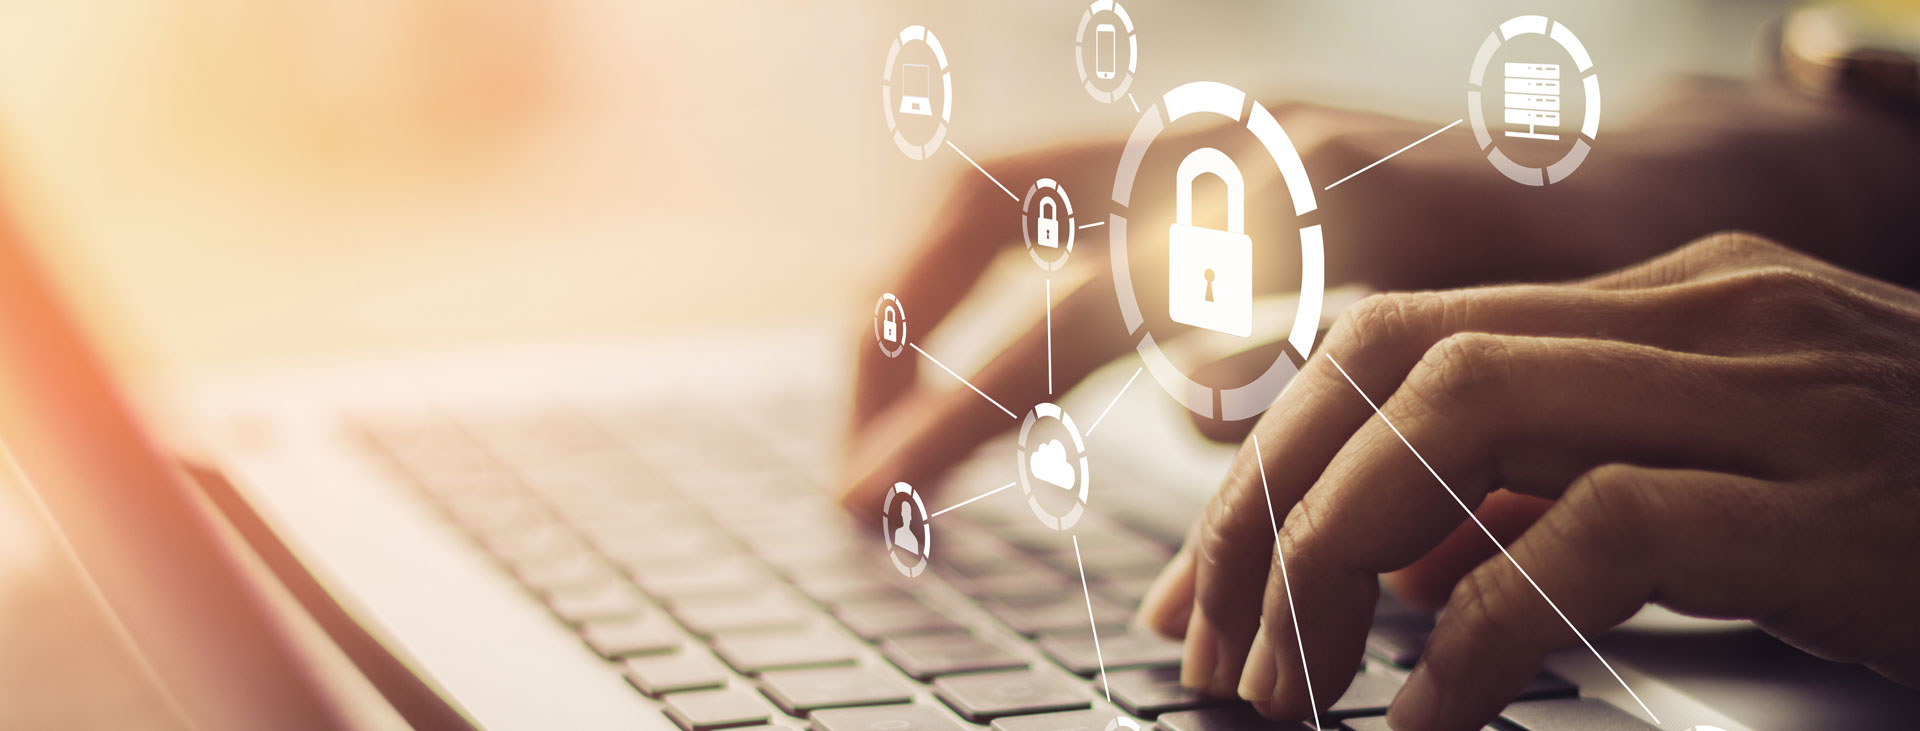 6 must-do steps to protect your WordPress website in 2019